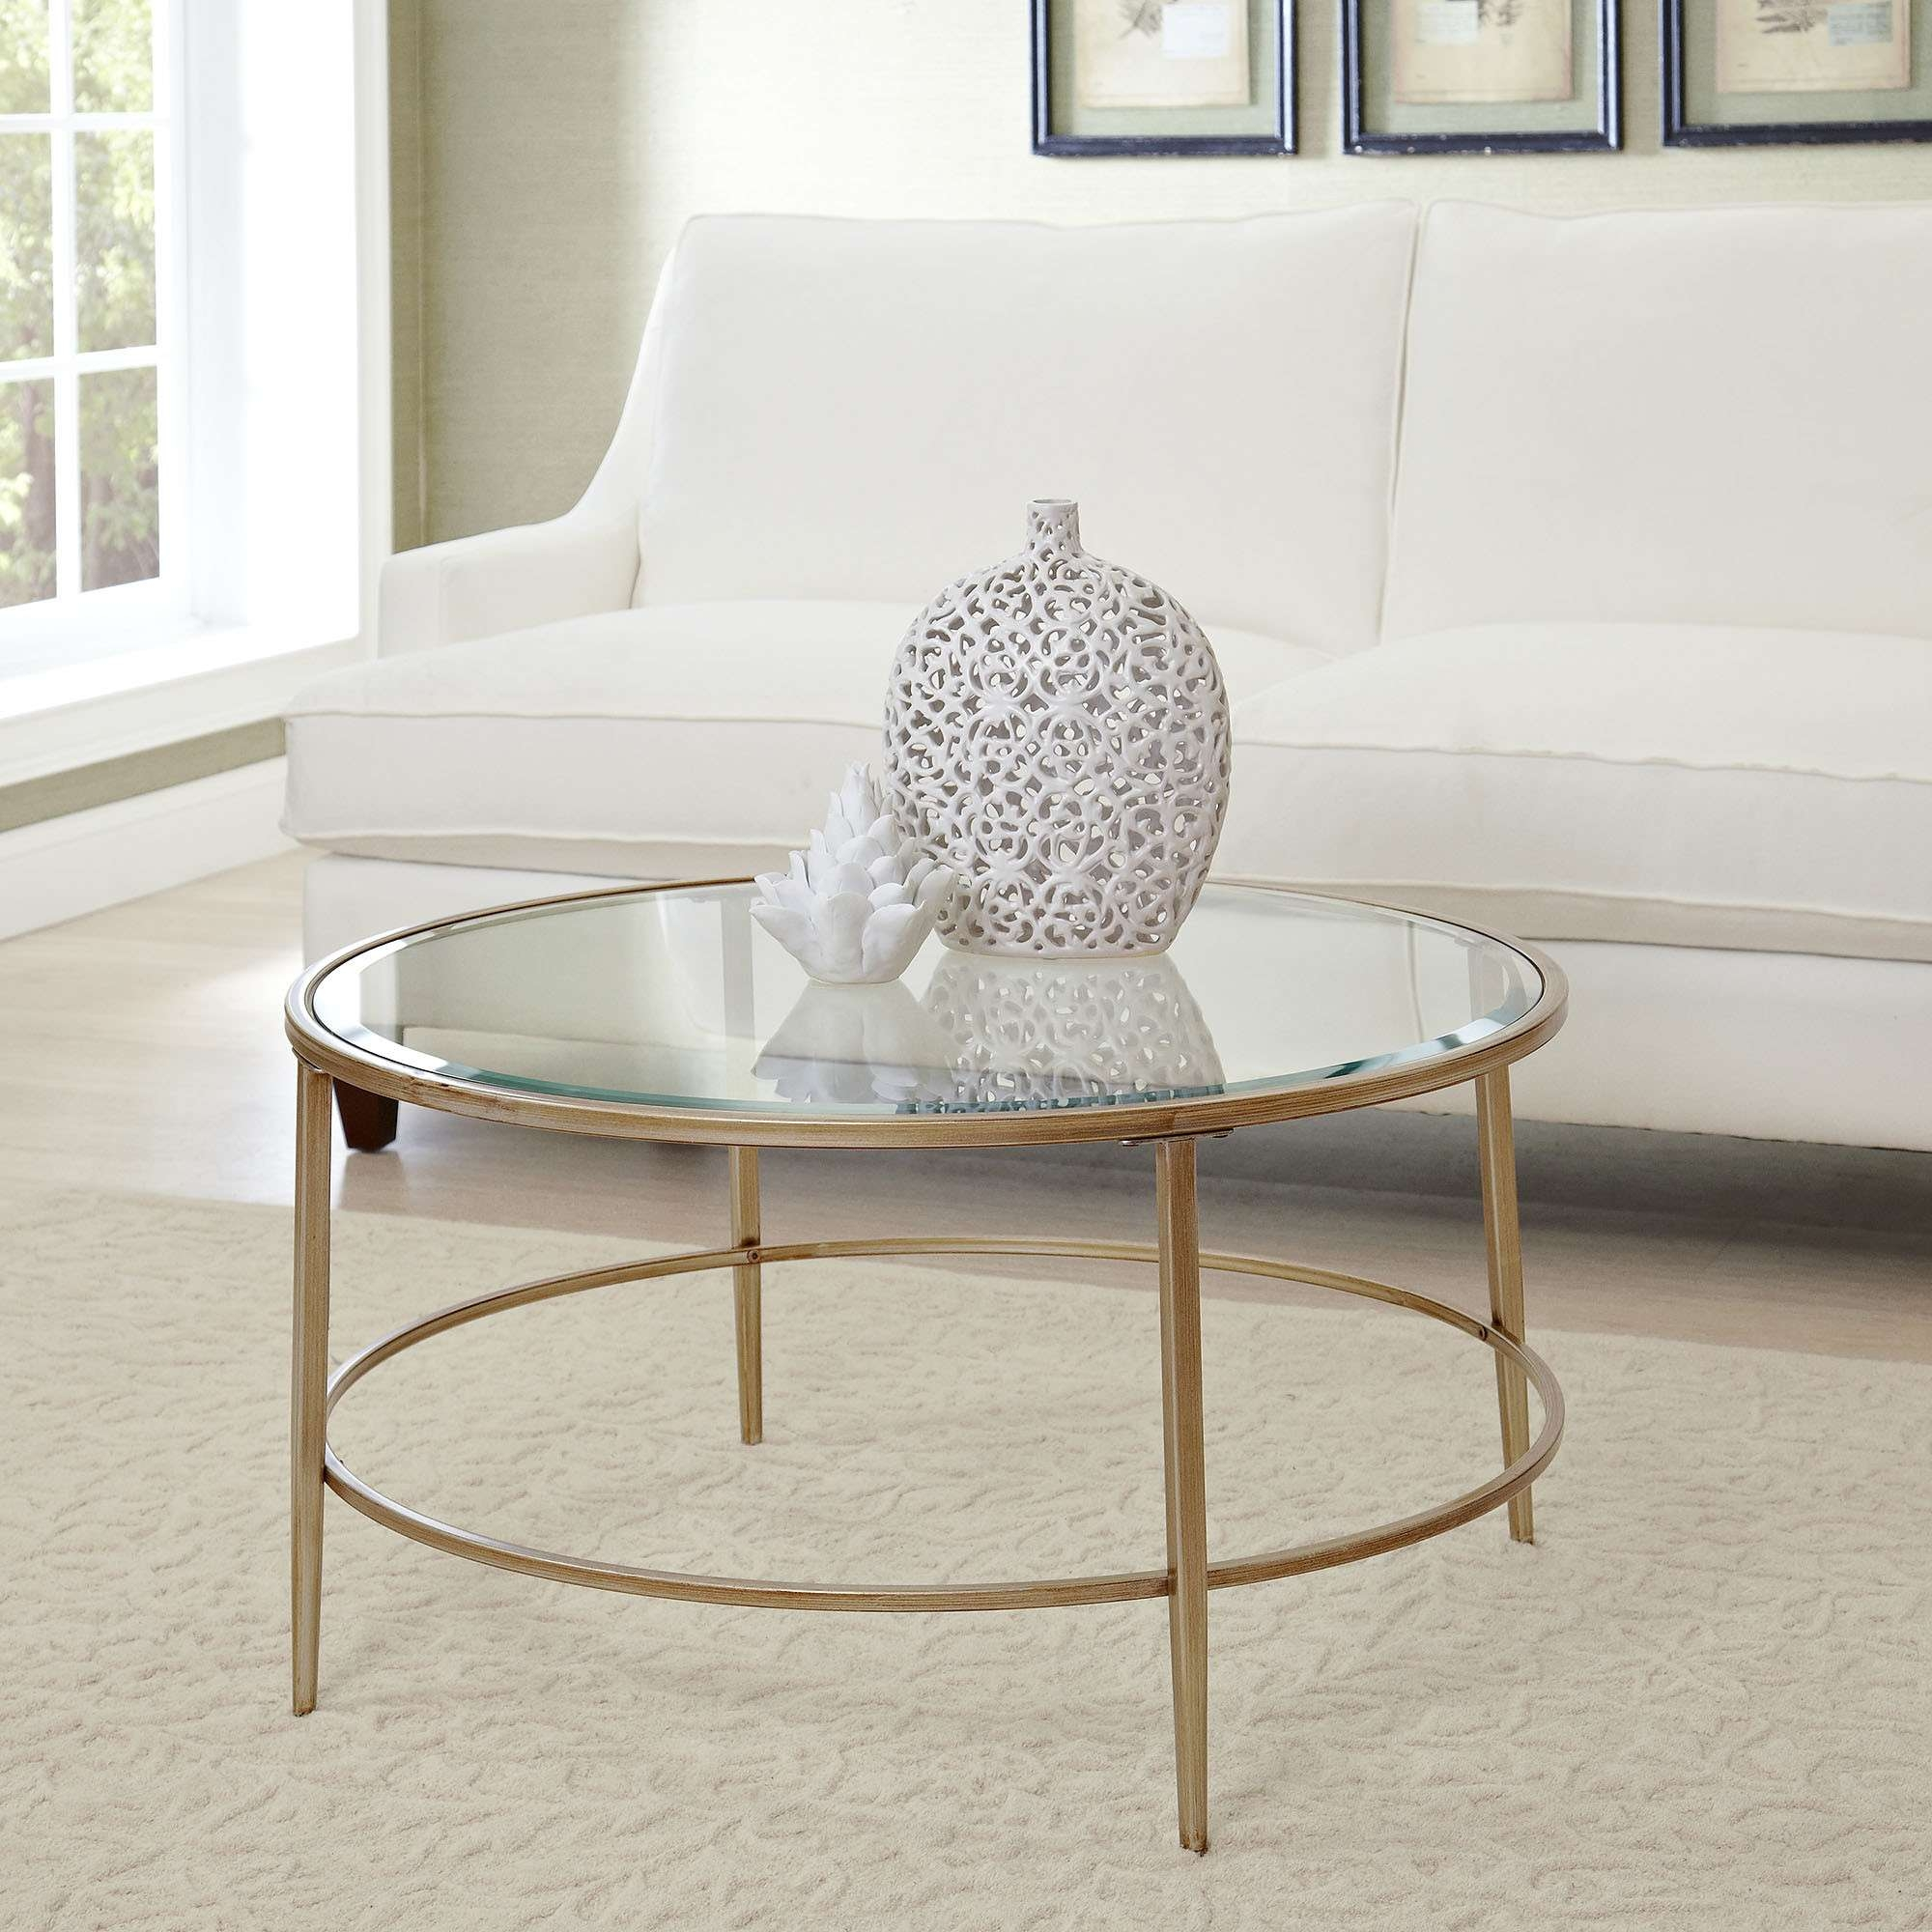 Widely Used Circular Glass Coffee Tables With Regard To Coffee Tables : Gold Glass Coffee Table Uttermost Henzler And Leaf (View 7 of 20)